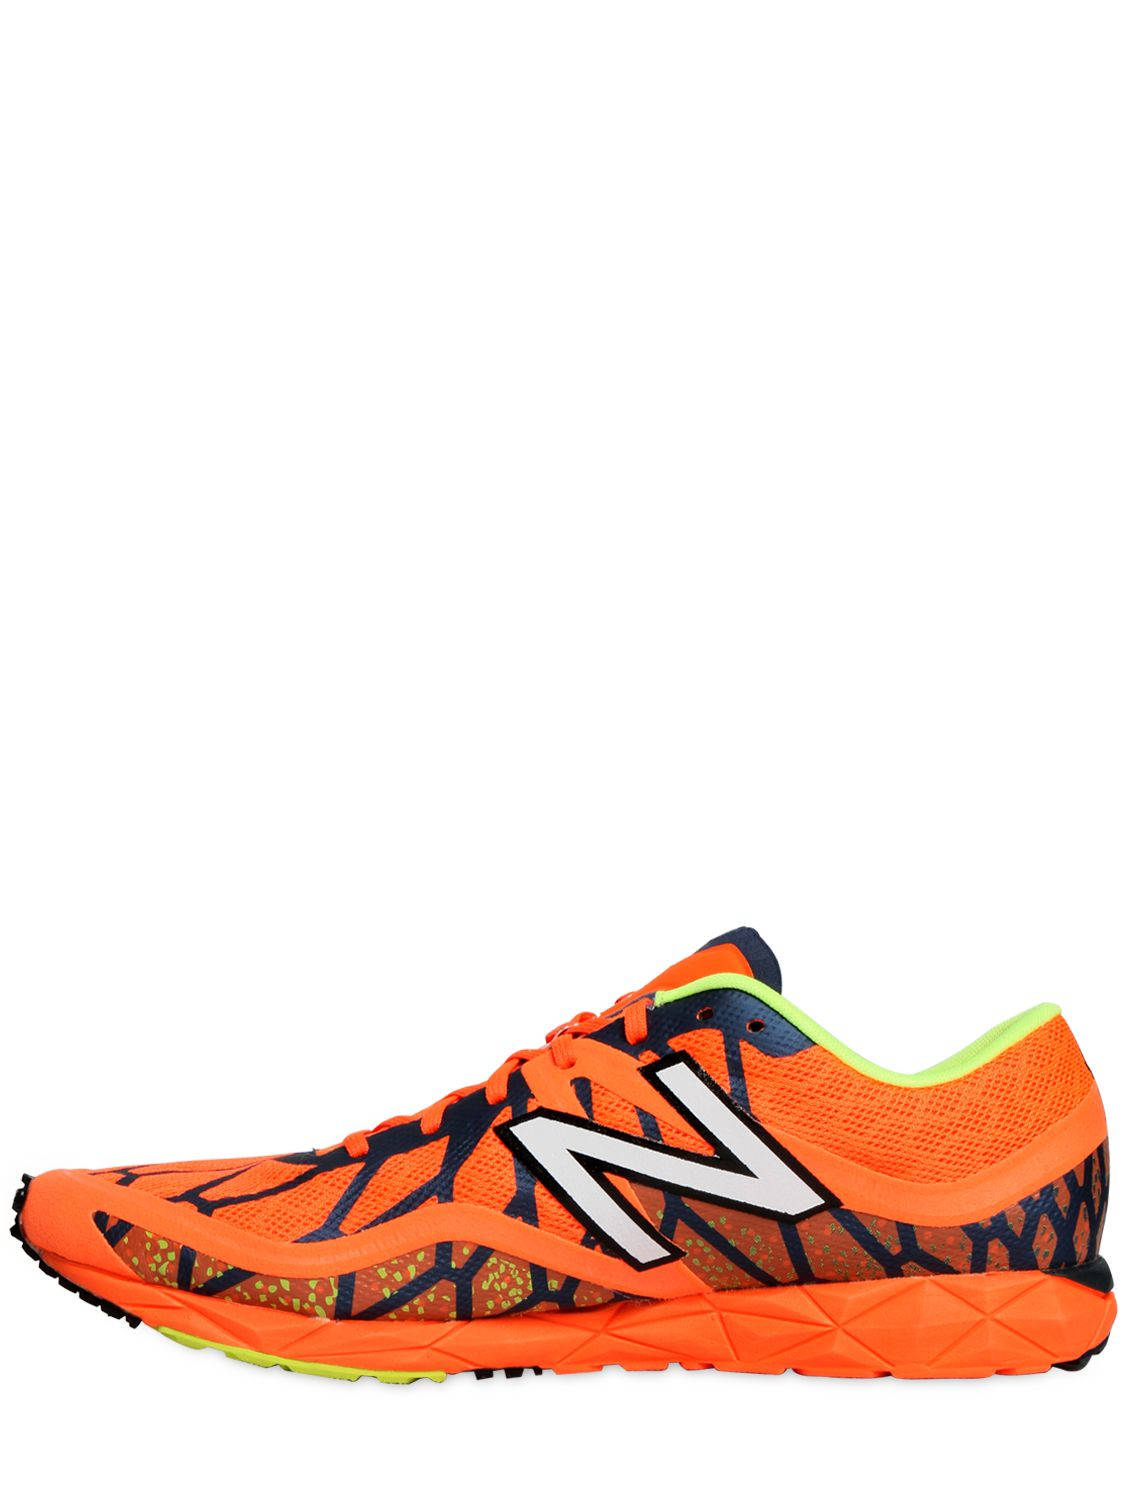 New Balance 1600 Fantom Fit Running Sneakers In Orange For